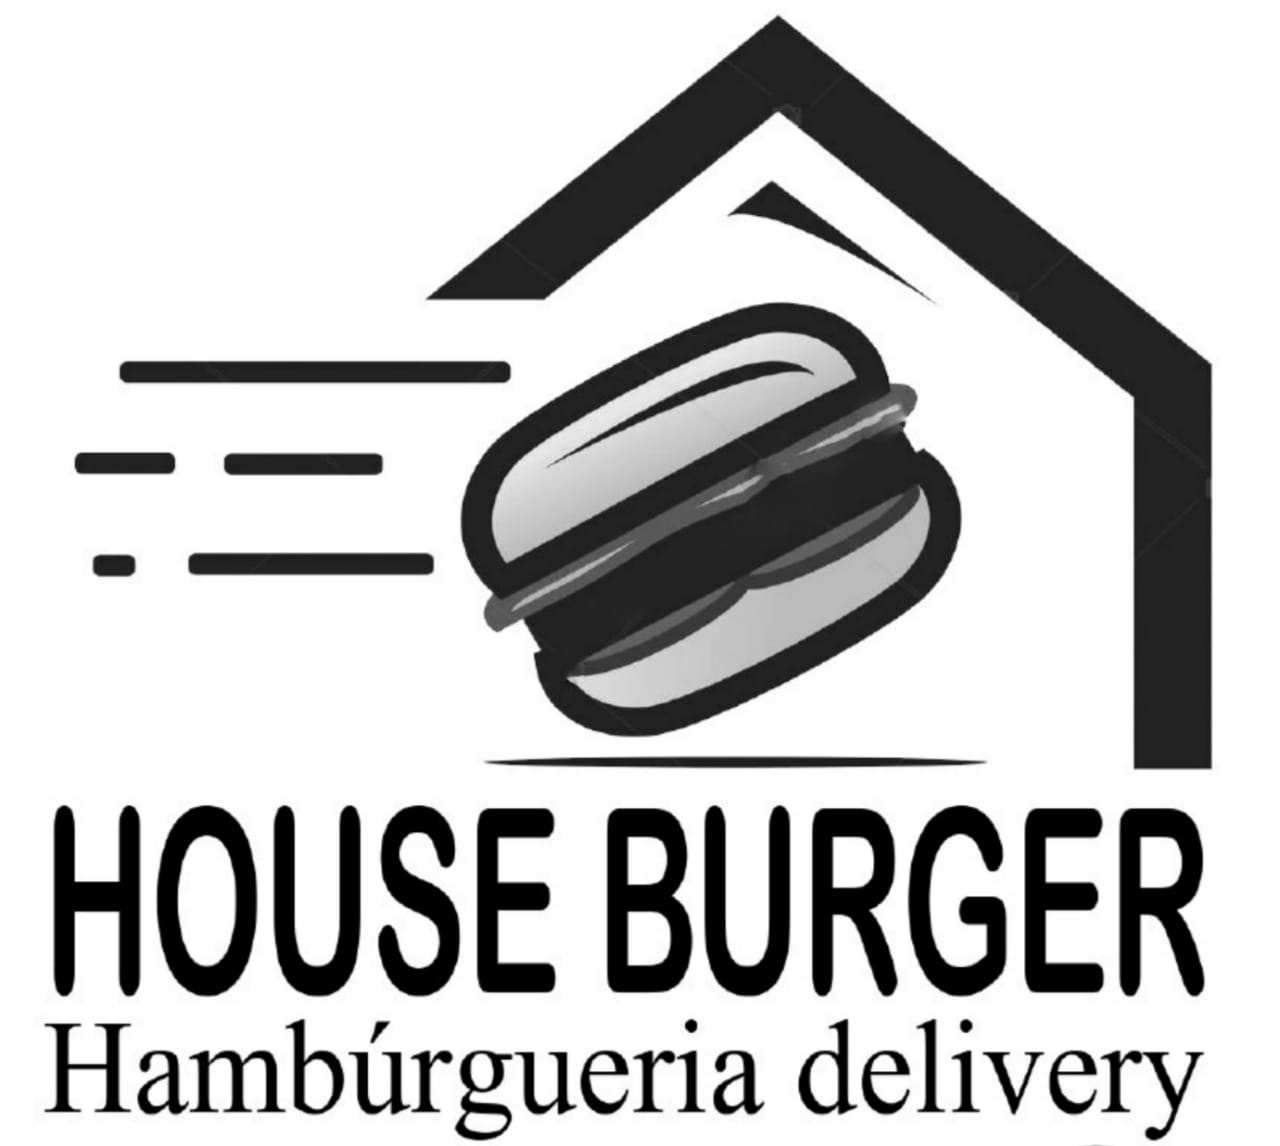 Logo-Hamburgueria - HOUSE BURGER